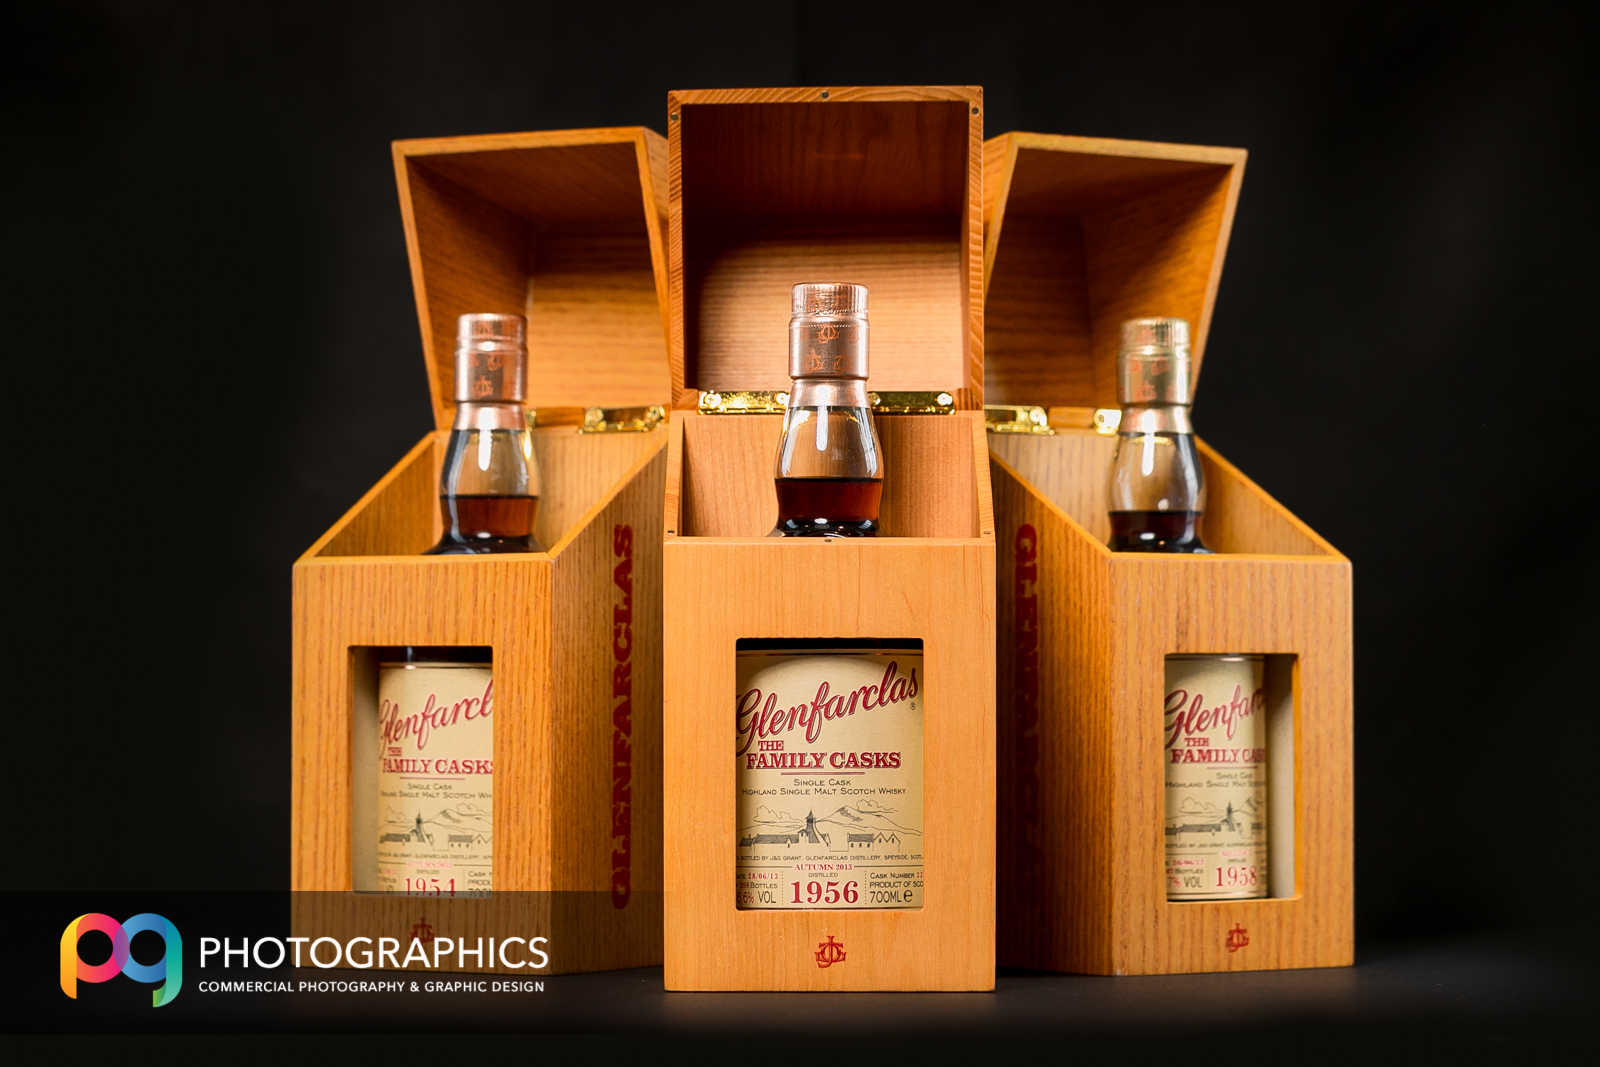 product-whisky-photography-glasgow-edinburgh-scotland-7.jpg